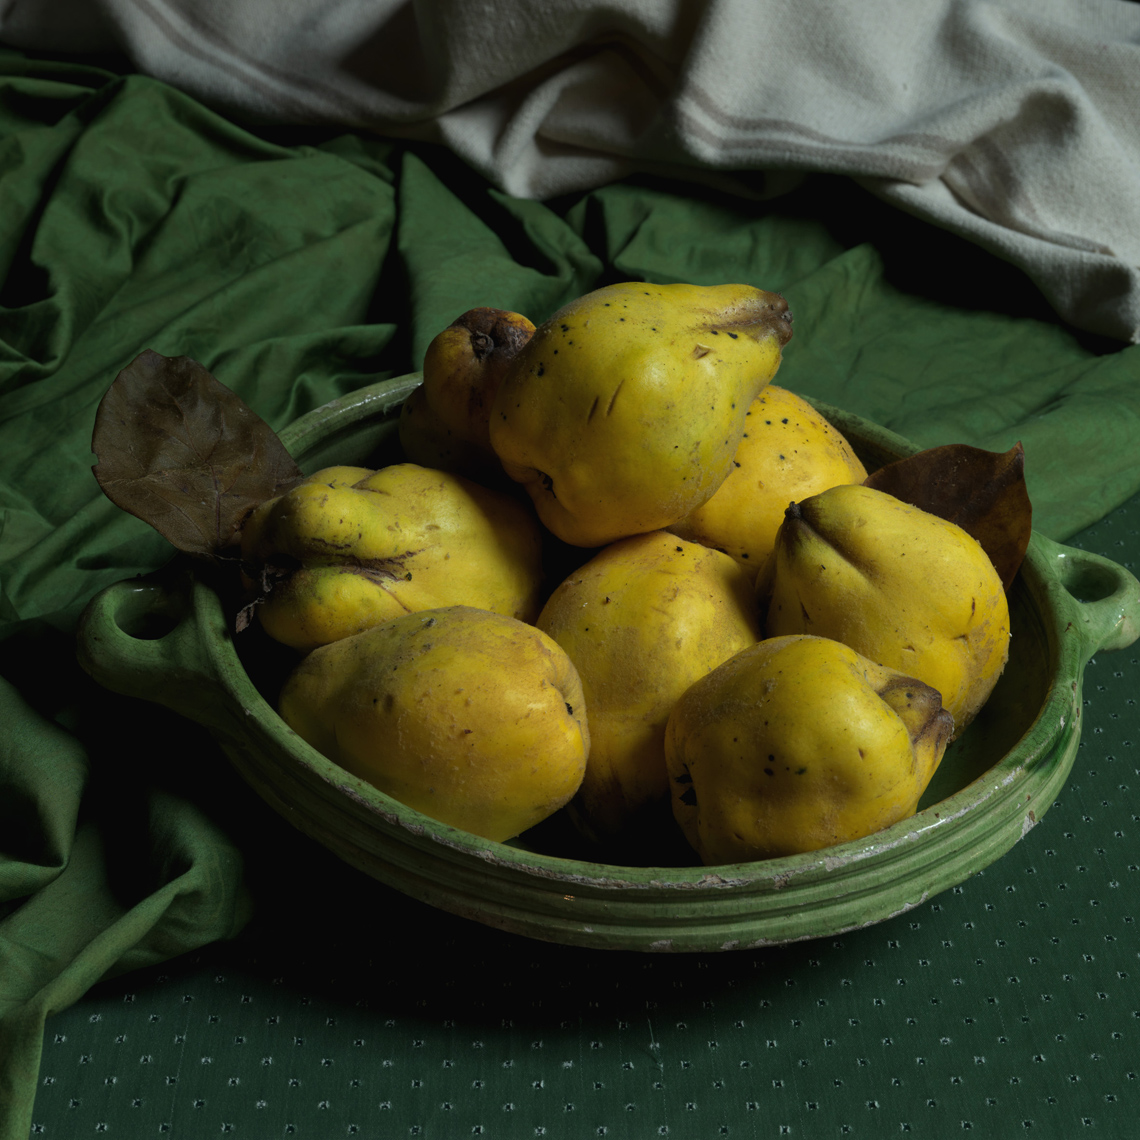 Quinces by Frank van Driel